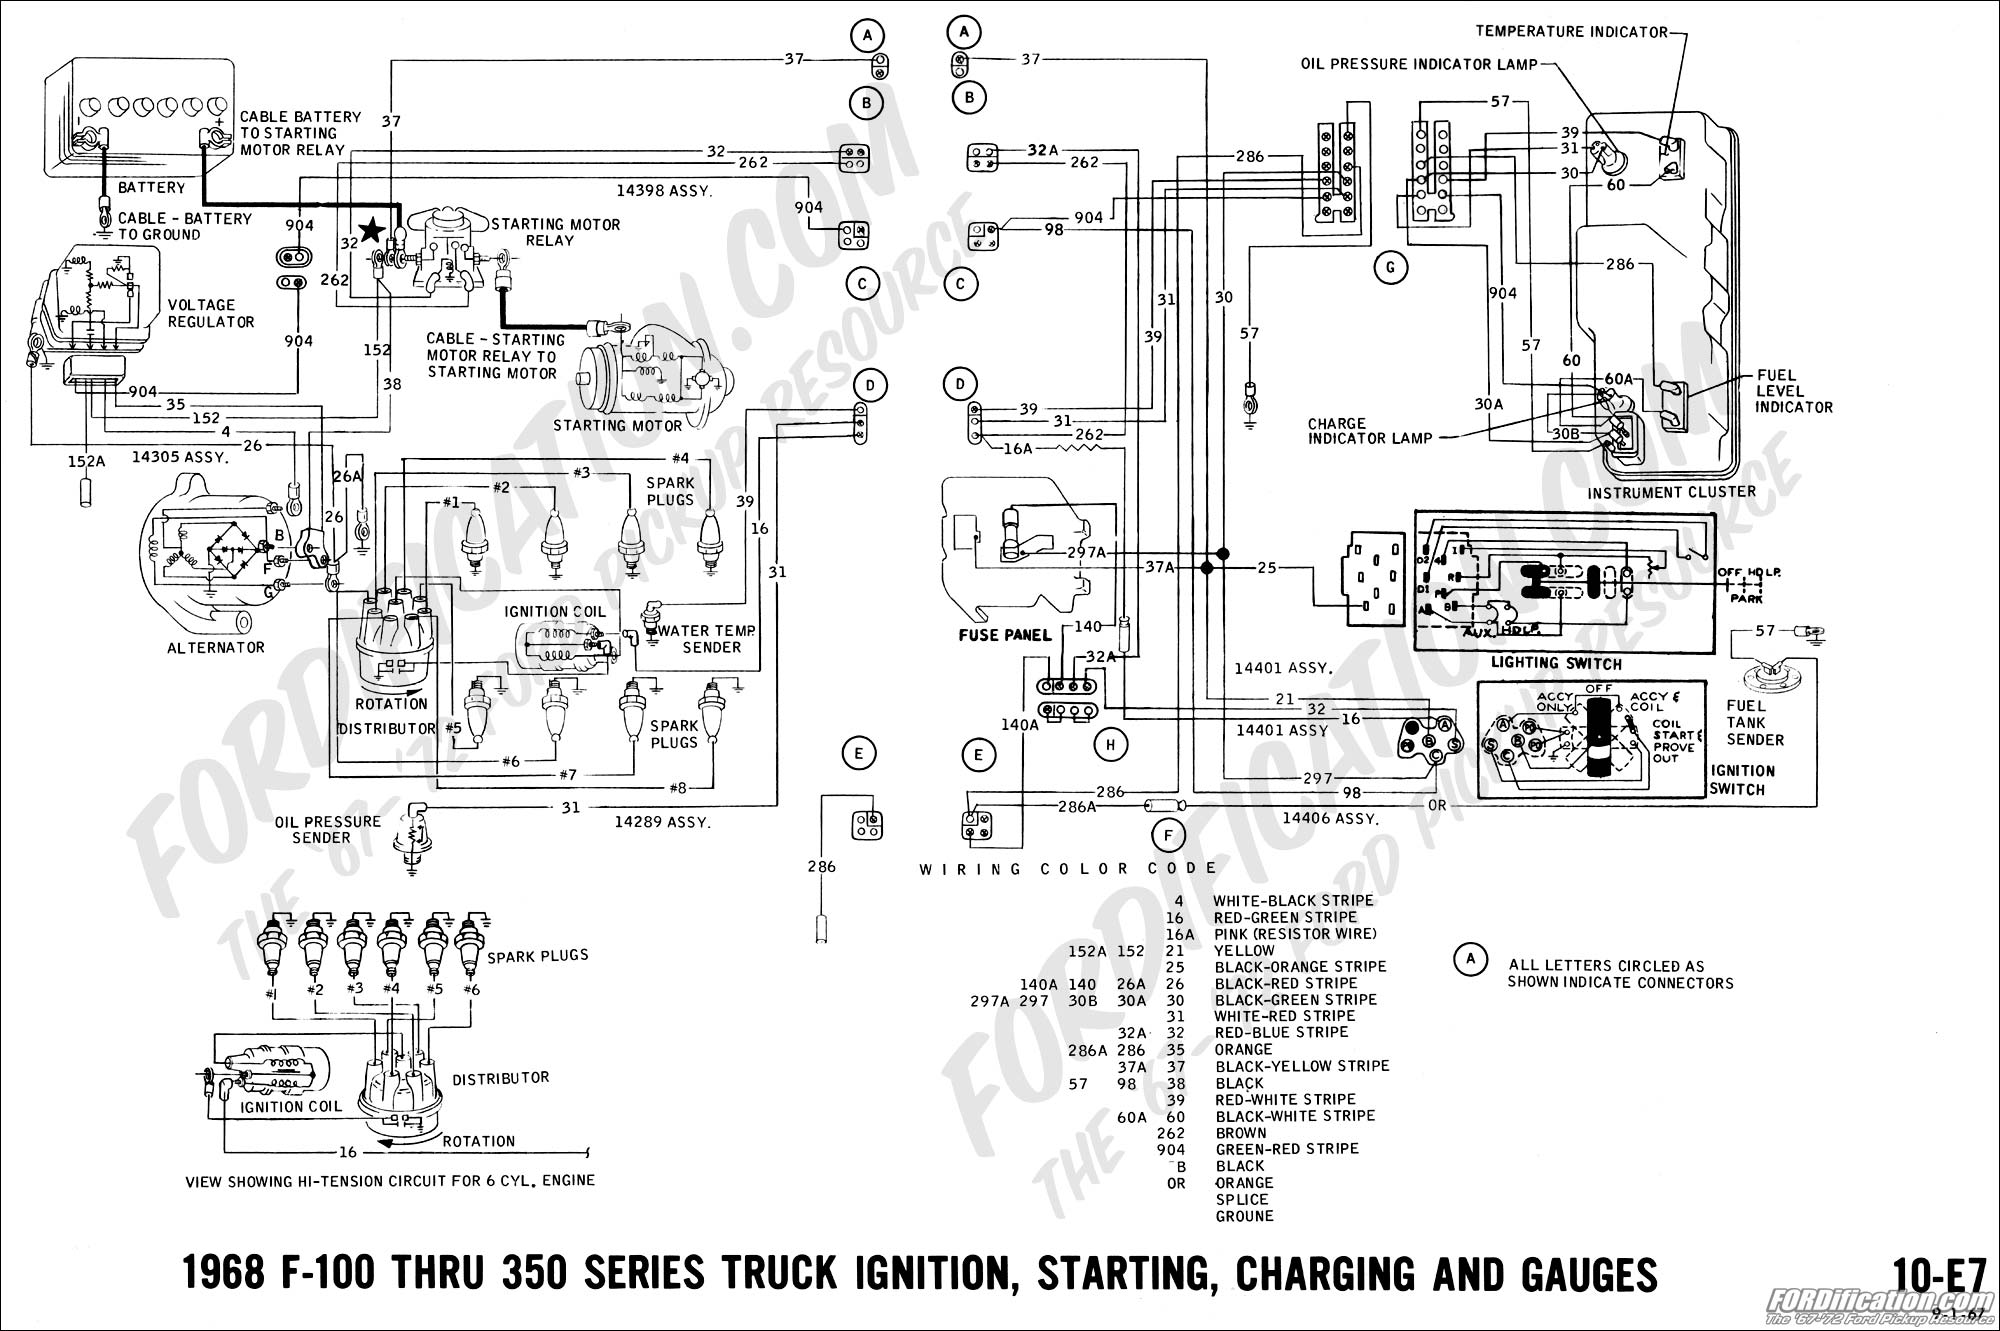 1967 f150 wiring diagram detailed schematics diagram 1964 ford wiring diagram 12v to both neg and pos side of coil ford truck enthusiasts forums f150 door diagram 1967 f150 wiring diagram